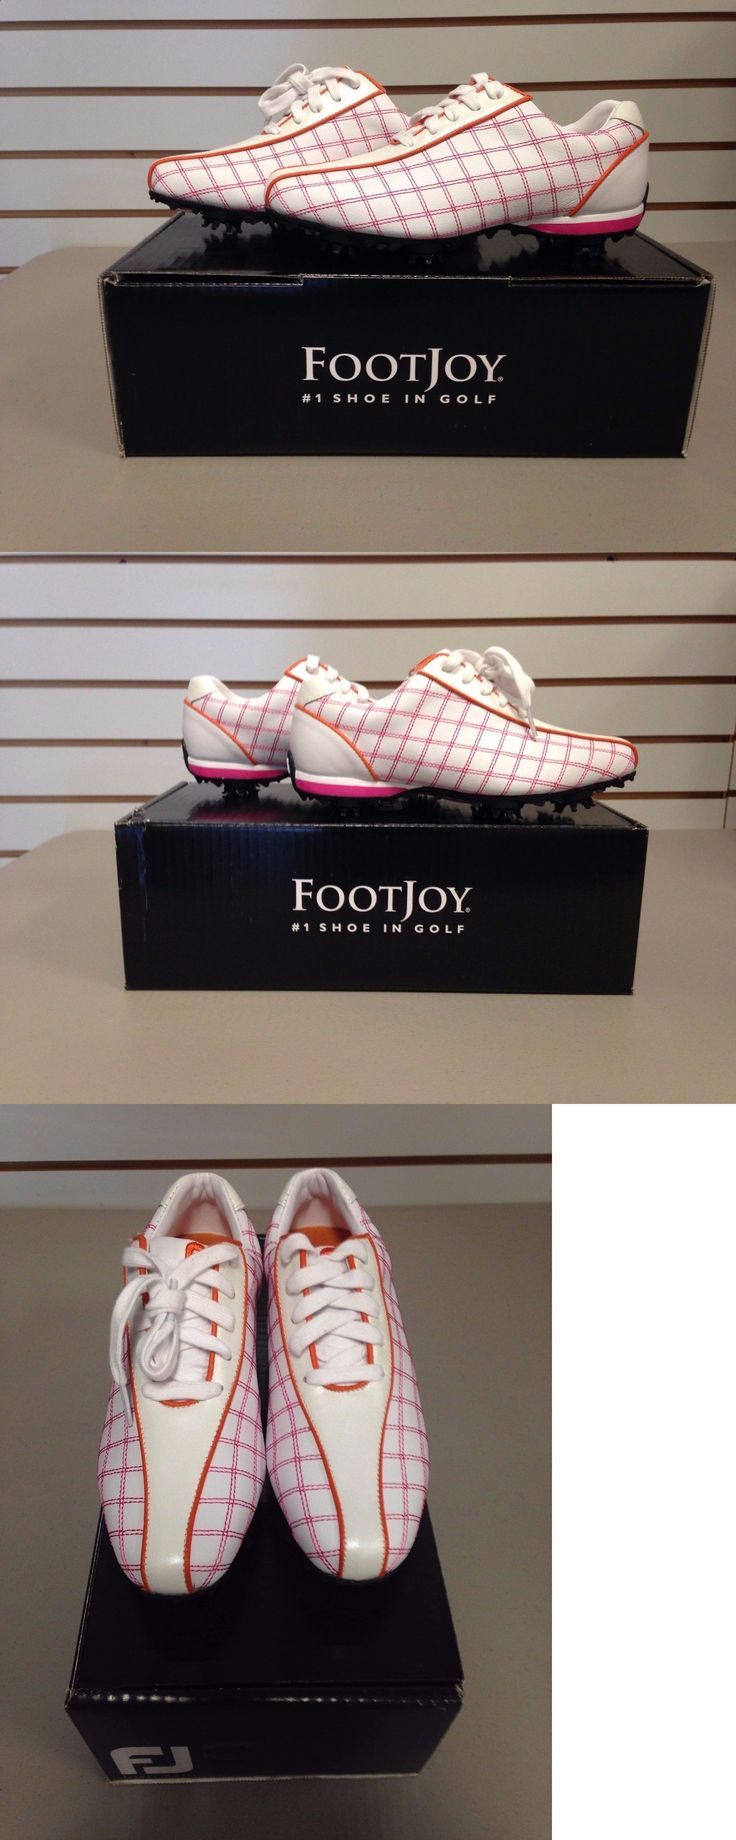 Golf Shoes 181147: Footjoy Lopro Women S Golf Shoe New In Box -> BUY IT NOW ONLY: $59.99 on eBay!